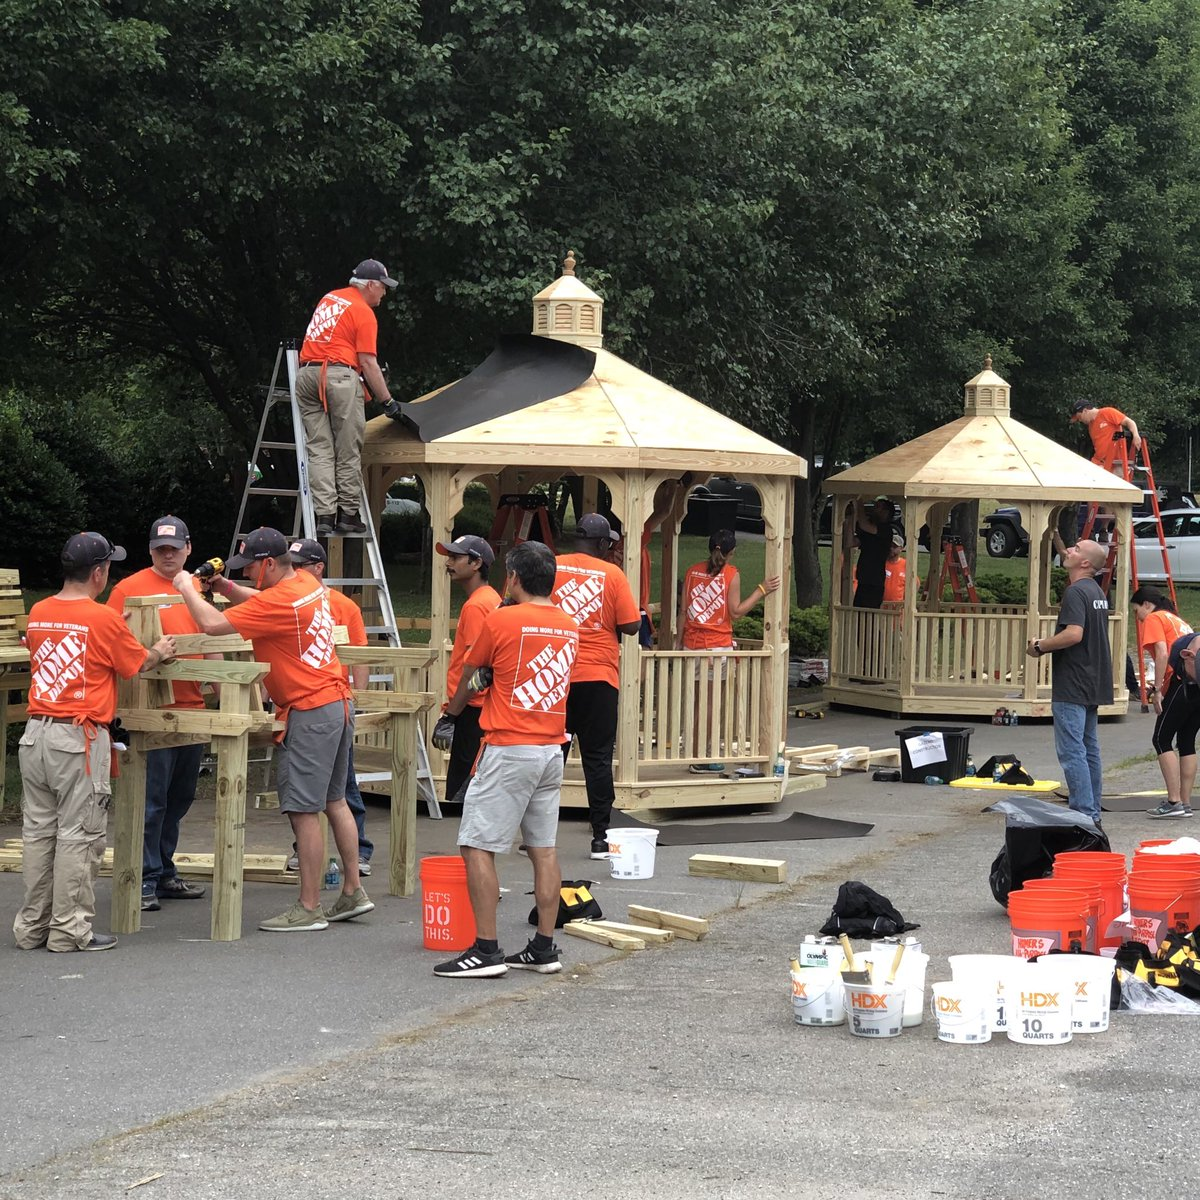 Daniel Grider On Twitter Today 200 Home Depot Technology Partners Came Together Doing Amazing Things For The Veteran Community In Asheville Nc Teamdepot Choosetoserve Shannonsgerber Mateo Money Heatherpp Https T Co Ubm7fyteyk